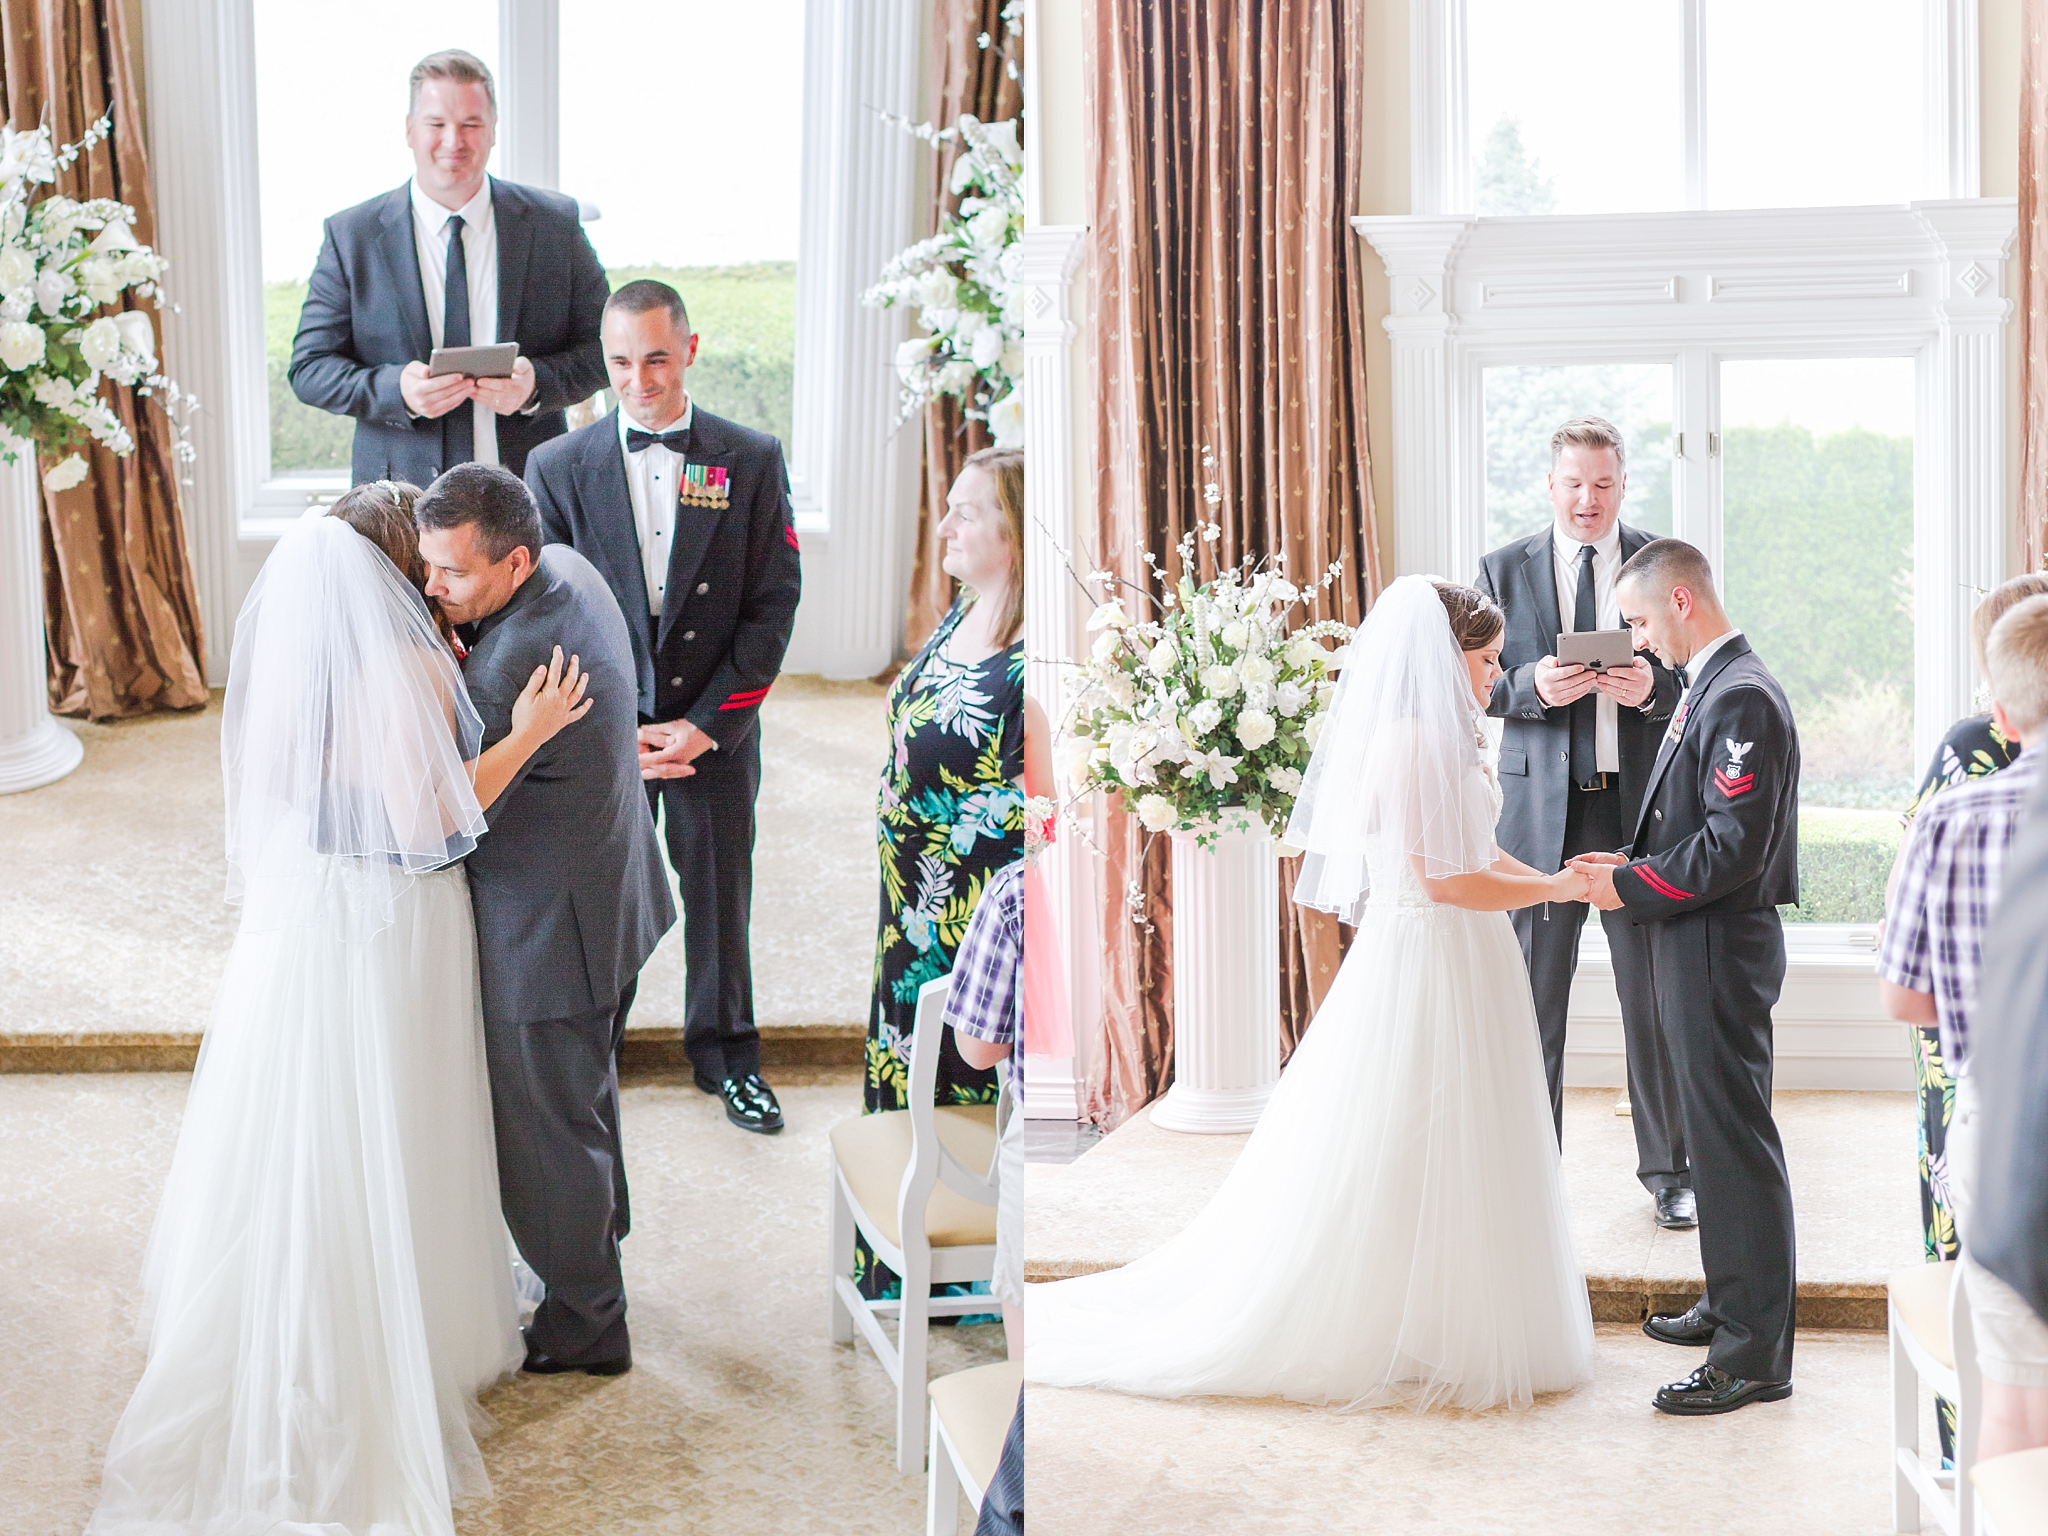 romantic-artful-candid-wedding-photos-in-st-clair-shores-at-the-white-house-wedding-chapel-by-courtney-carolyn-photography_0028.jpg